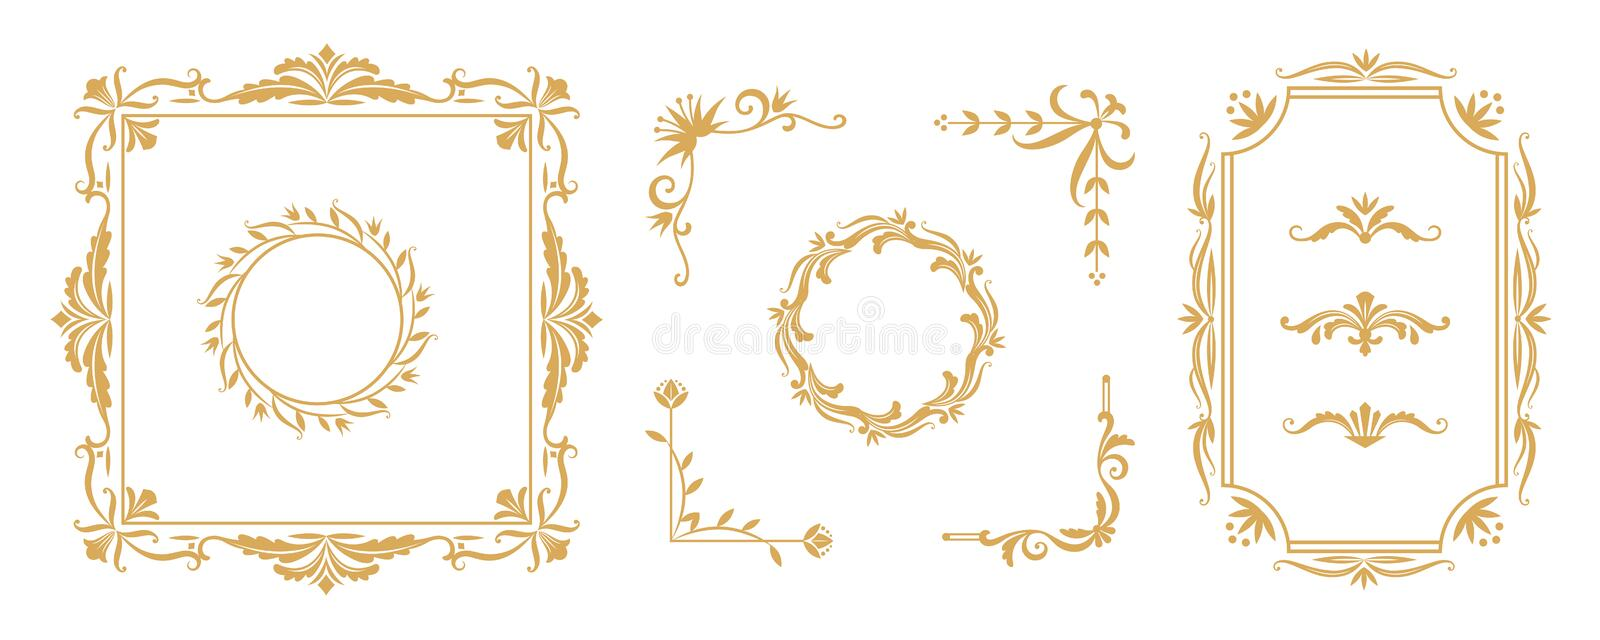 Decorative frame elements. Vintage floral ornamental borders and dividers for greeting and invitation cards. Vector stock illustration